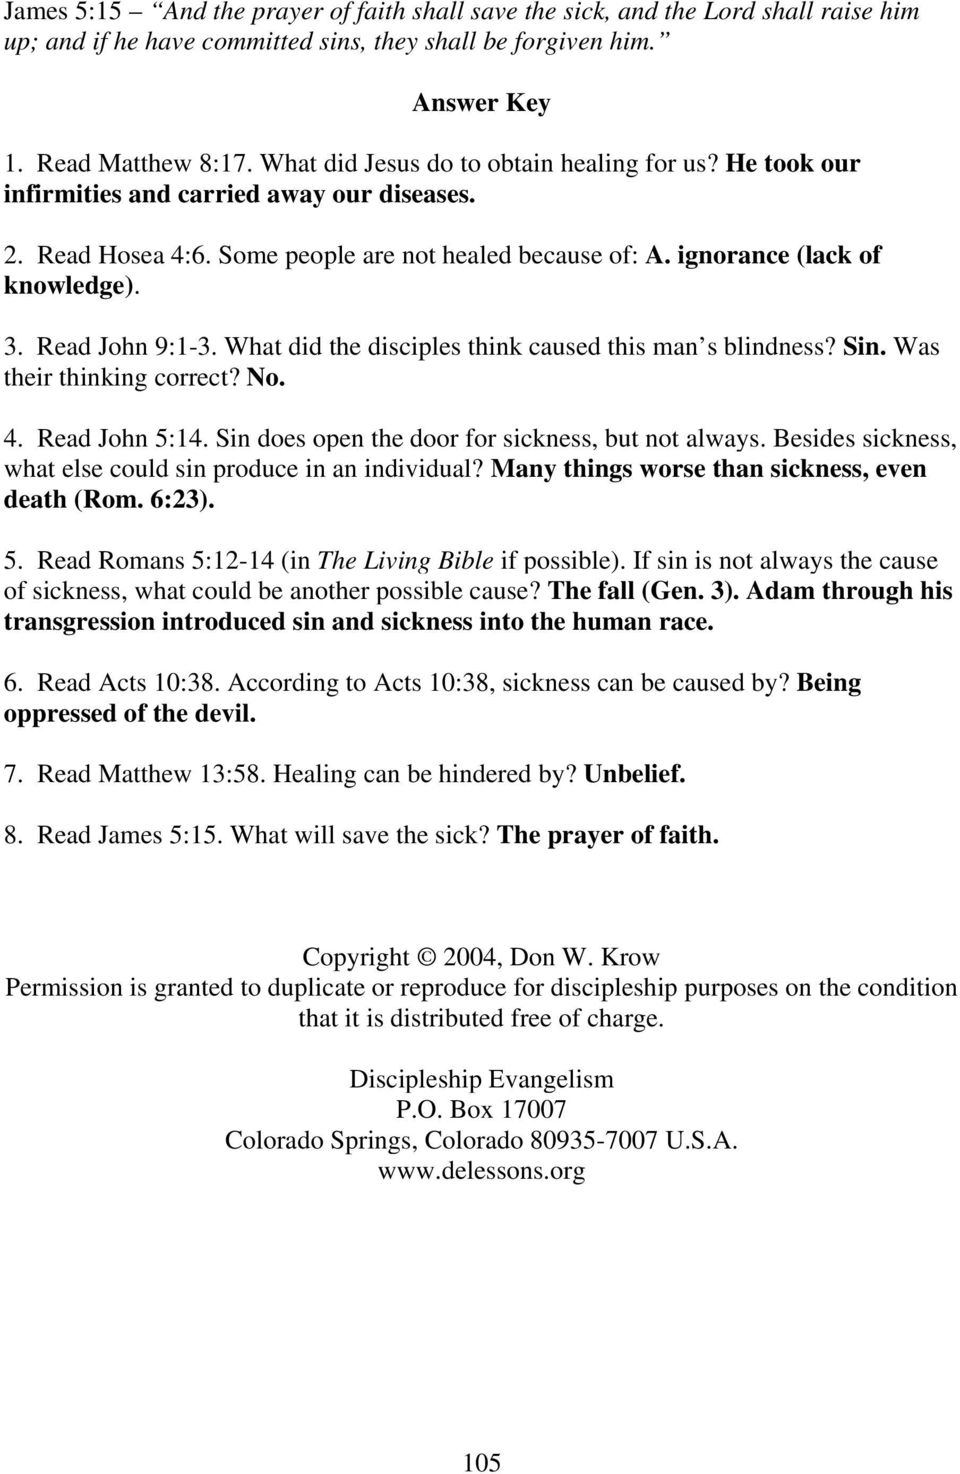 Level 2 Lesson 8  HINDRANCES TO HEALING By Andrew Wommack - PDF